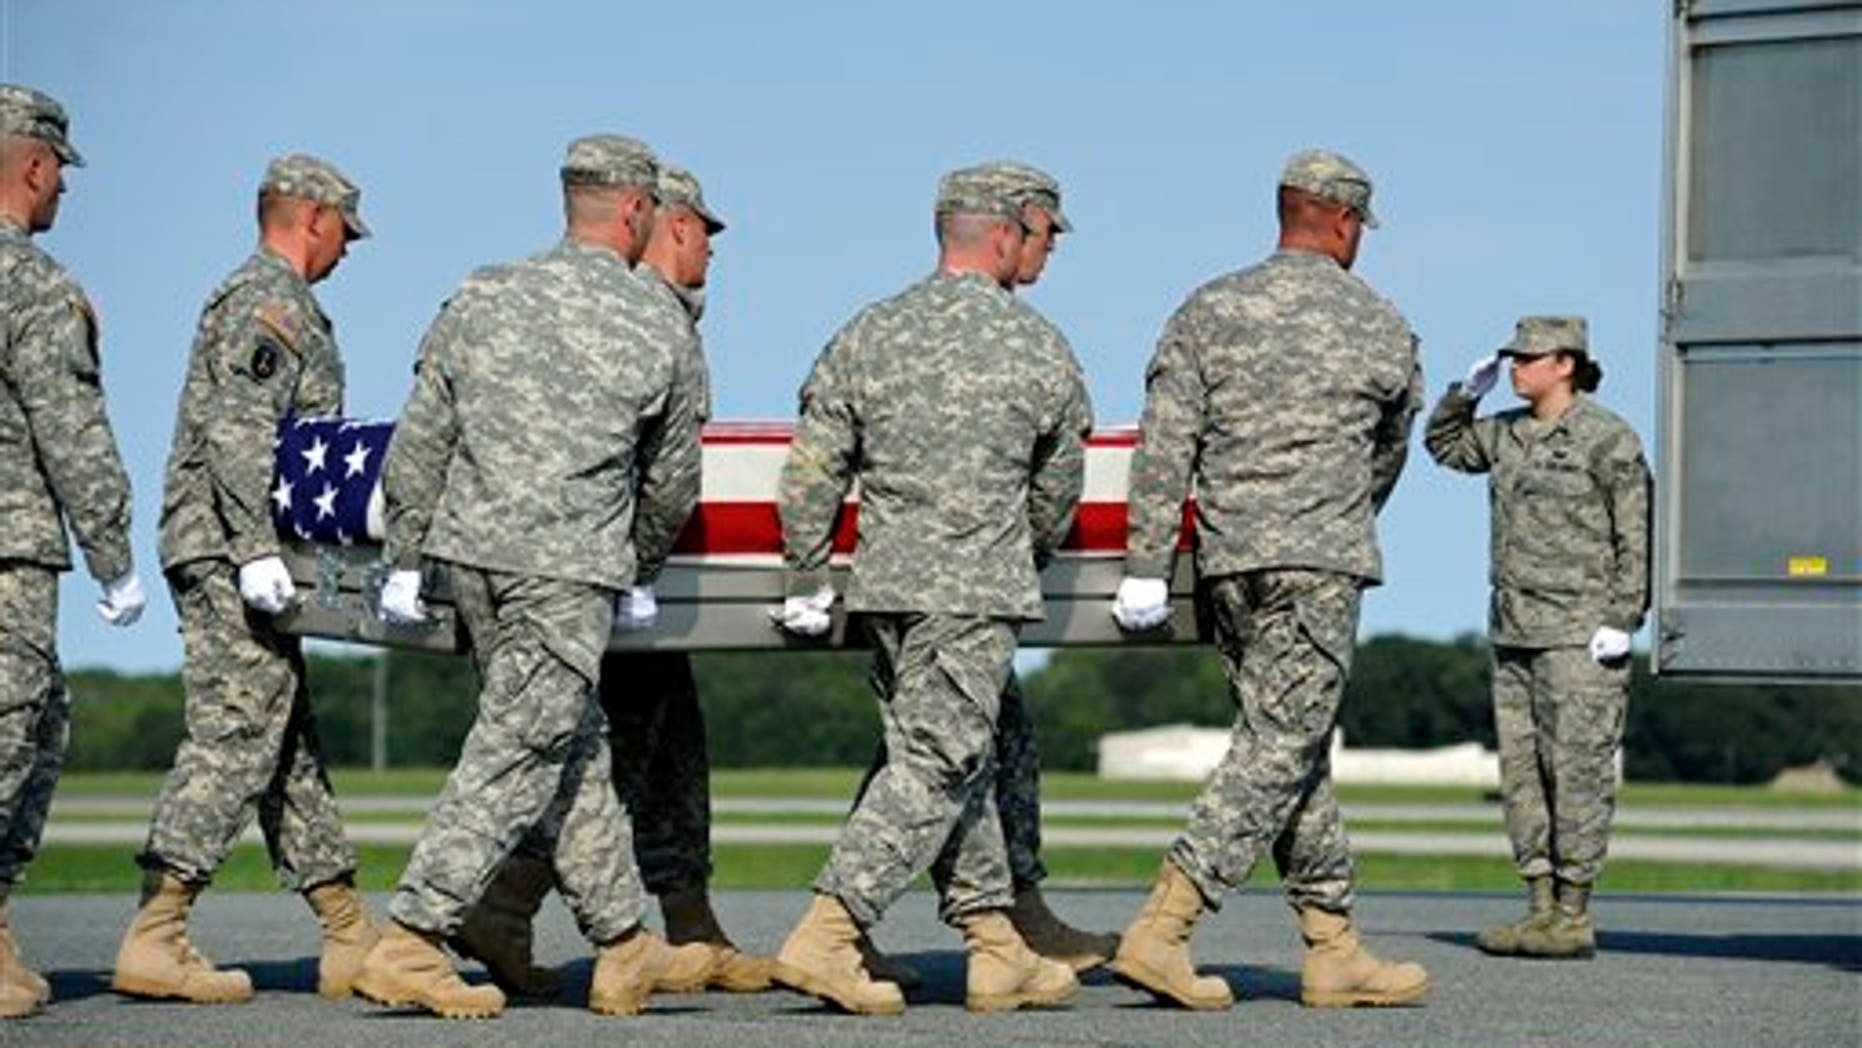 August 29: An Army carry team carries the transfer case containing the remains of Army Pfc. Jesse W. Dietrich, 20, of Venus, Texas, at Dover Air Force Base, DE.